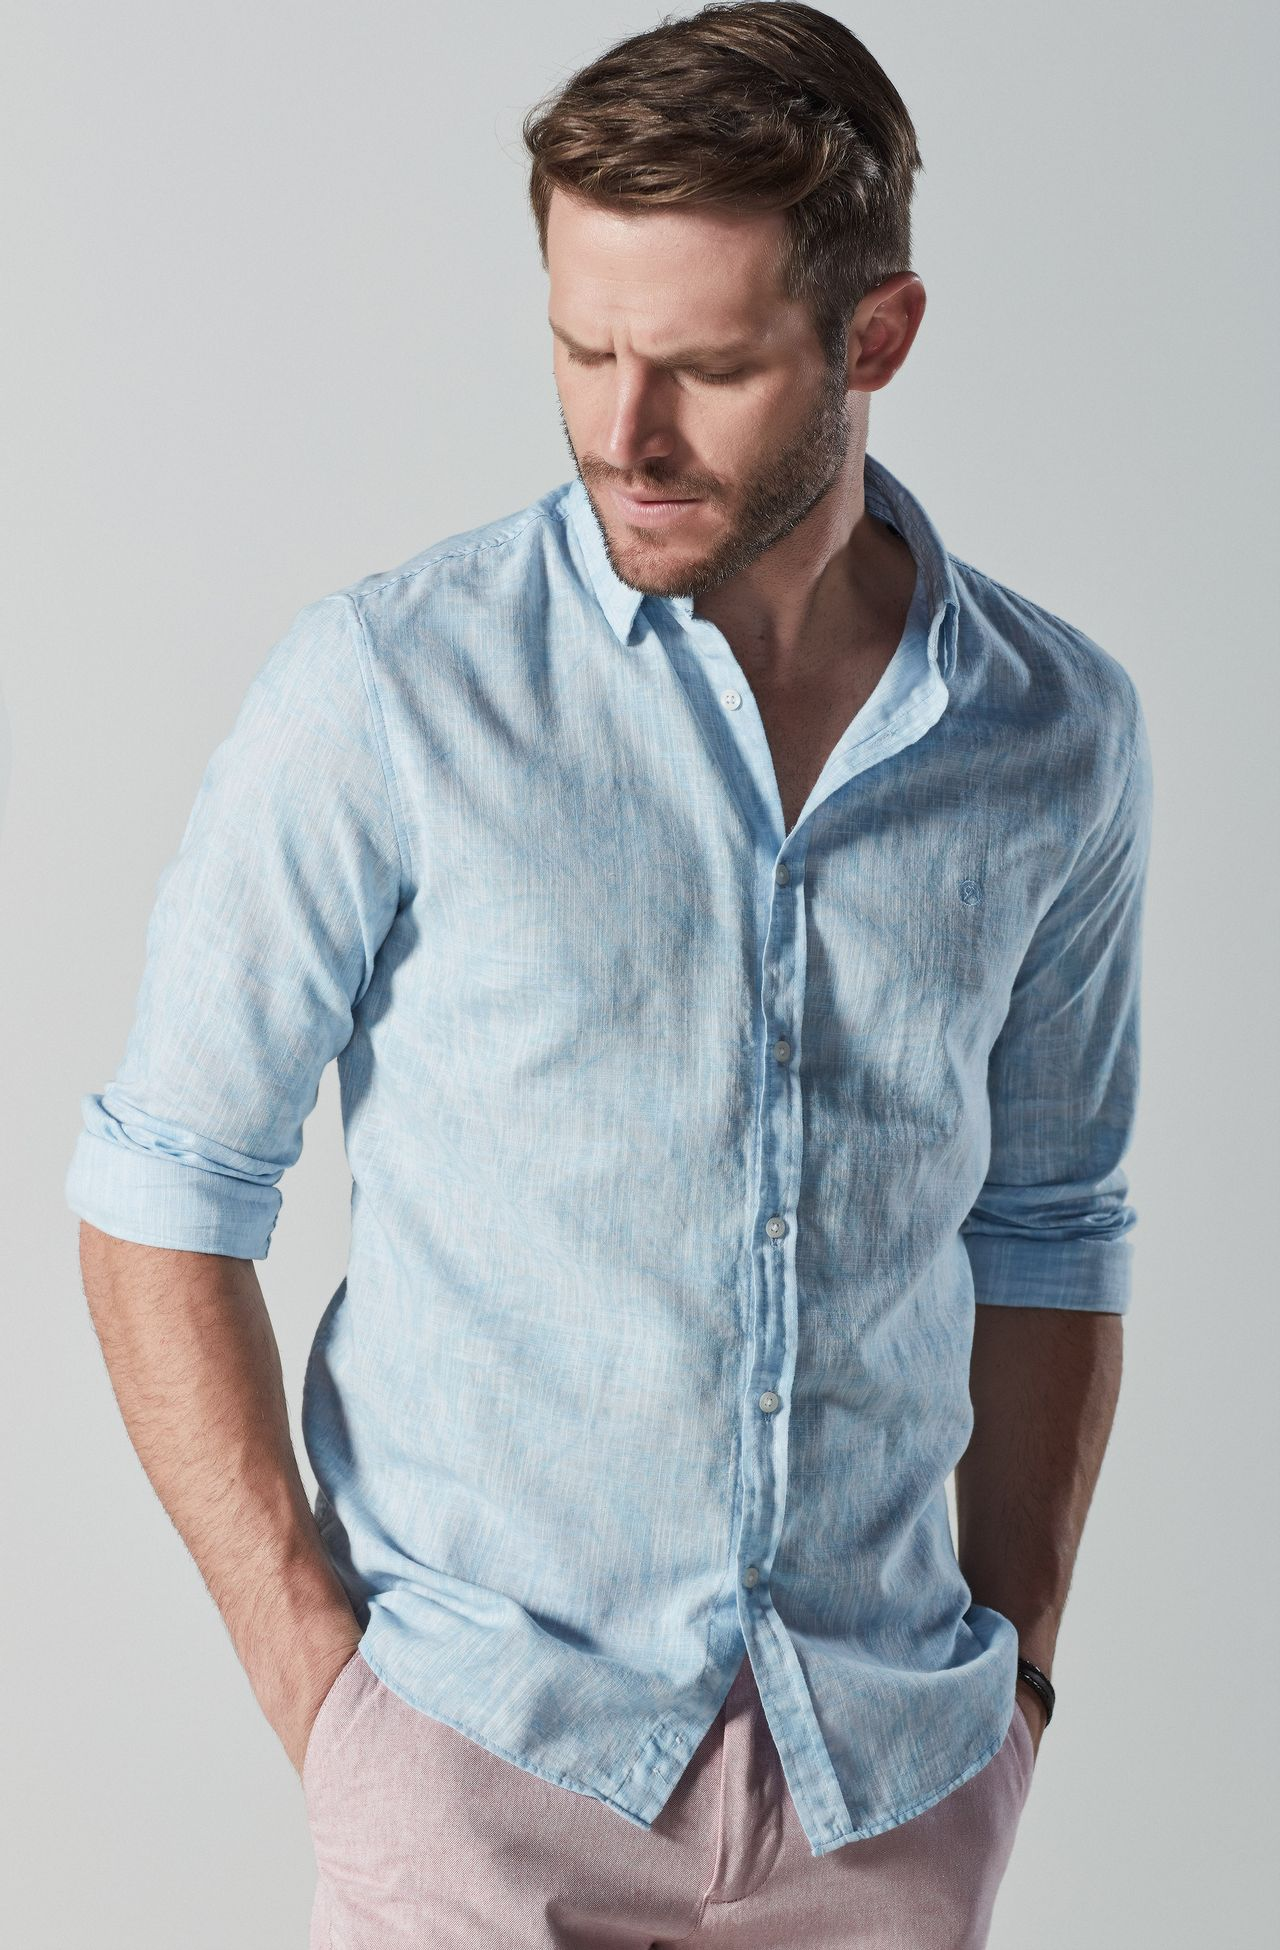 2503VCZ41746_545_1-CAMISA-CASUAL-ML-ESTAMPADA-FLAME